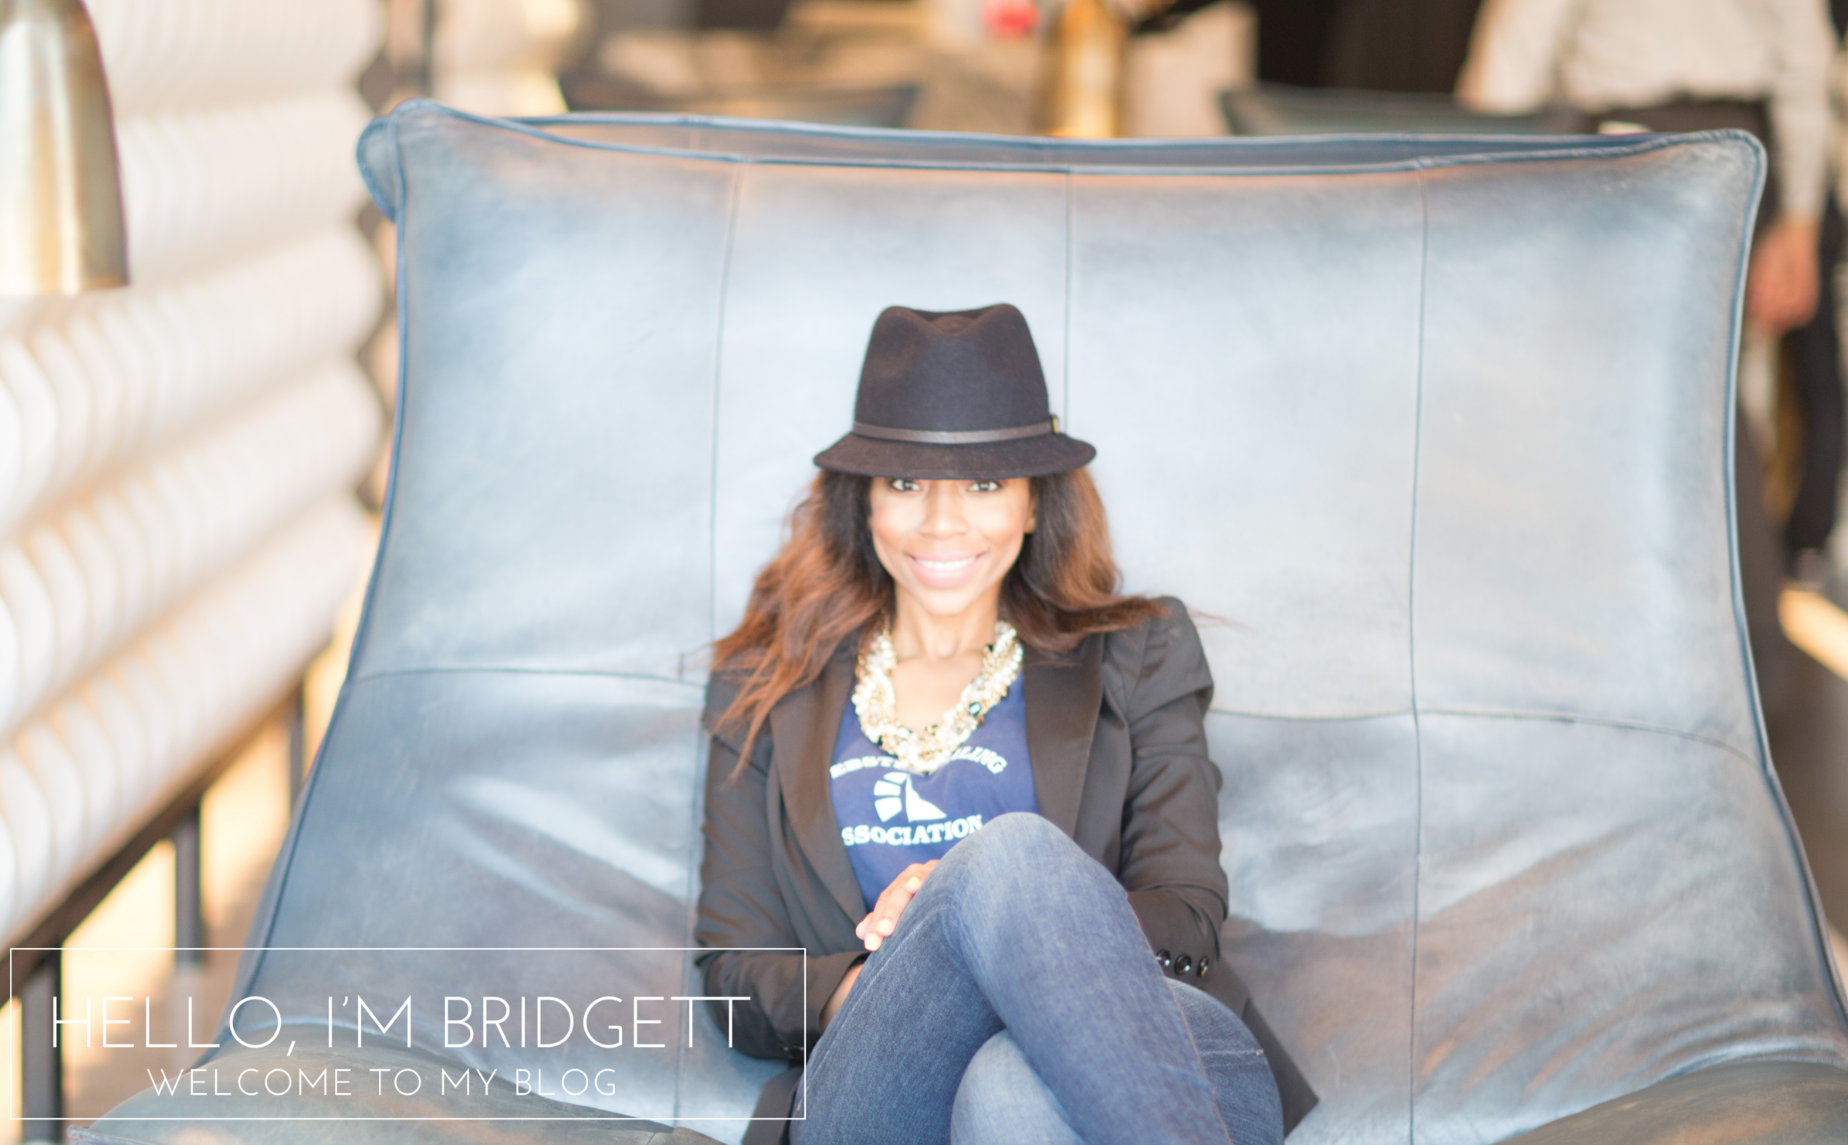 The Editor - Hi. I'm Bridgett McNeill, and I am the founder of Bridge Over Waters, an inspirational lifestyle blog that focuses on connection, journey, destination. Read more about the Editor here.